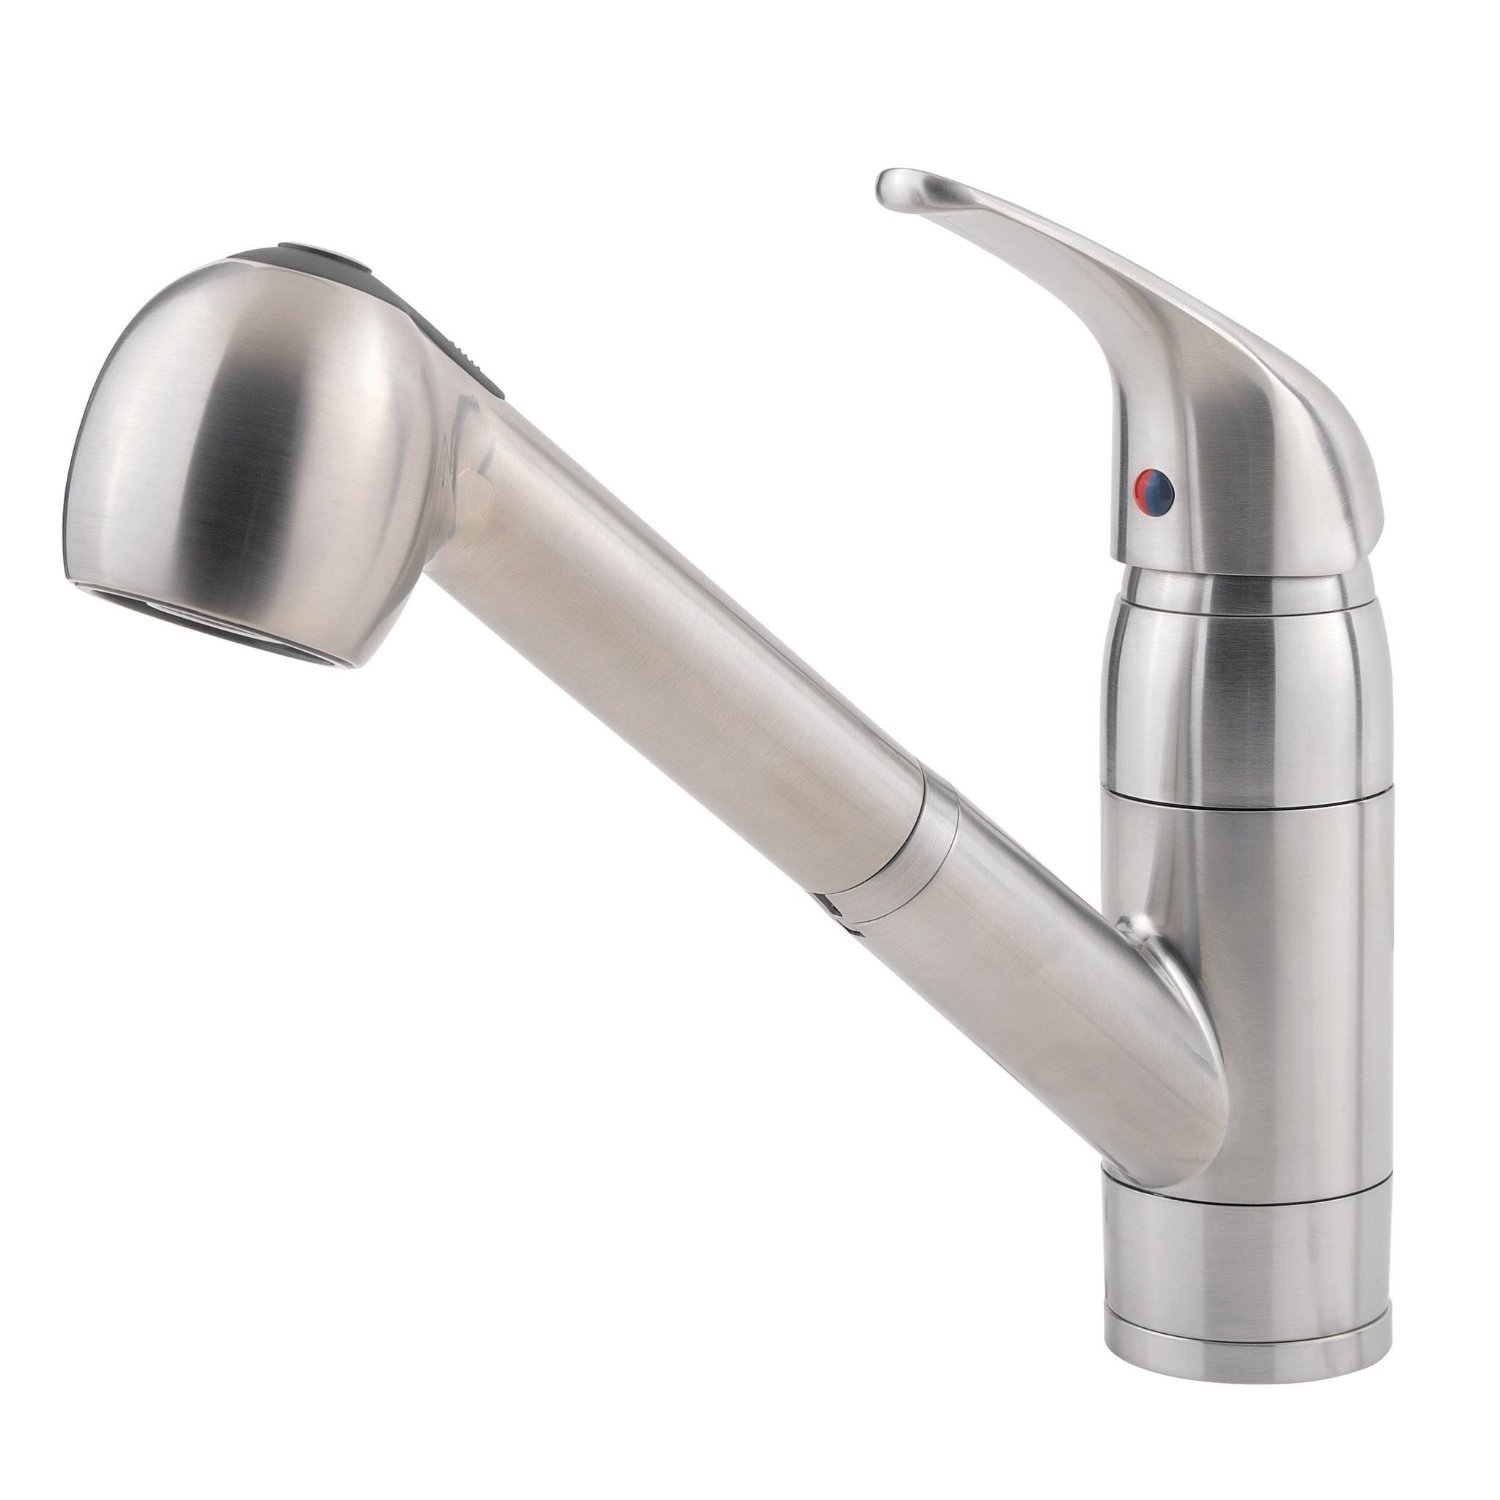 Types Of Kitchen Faucets: Types Of Moen Kitchen Faucets